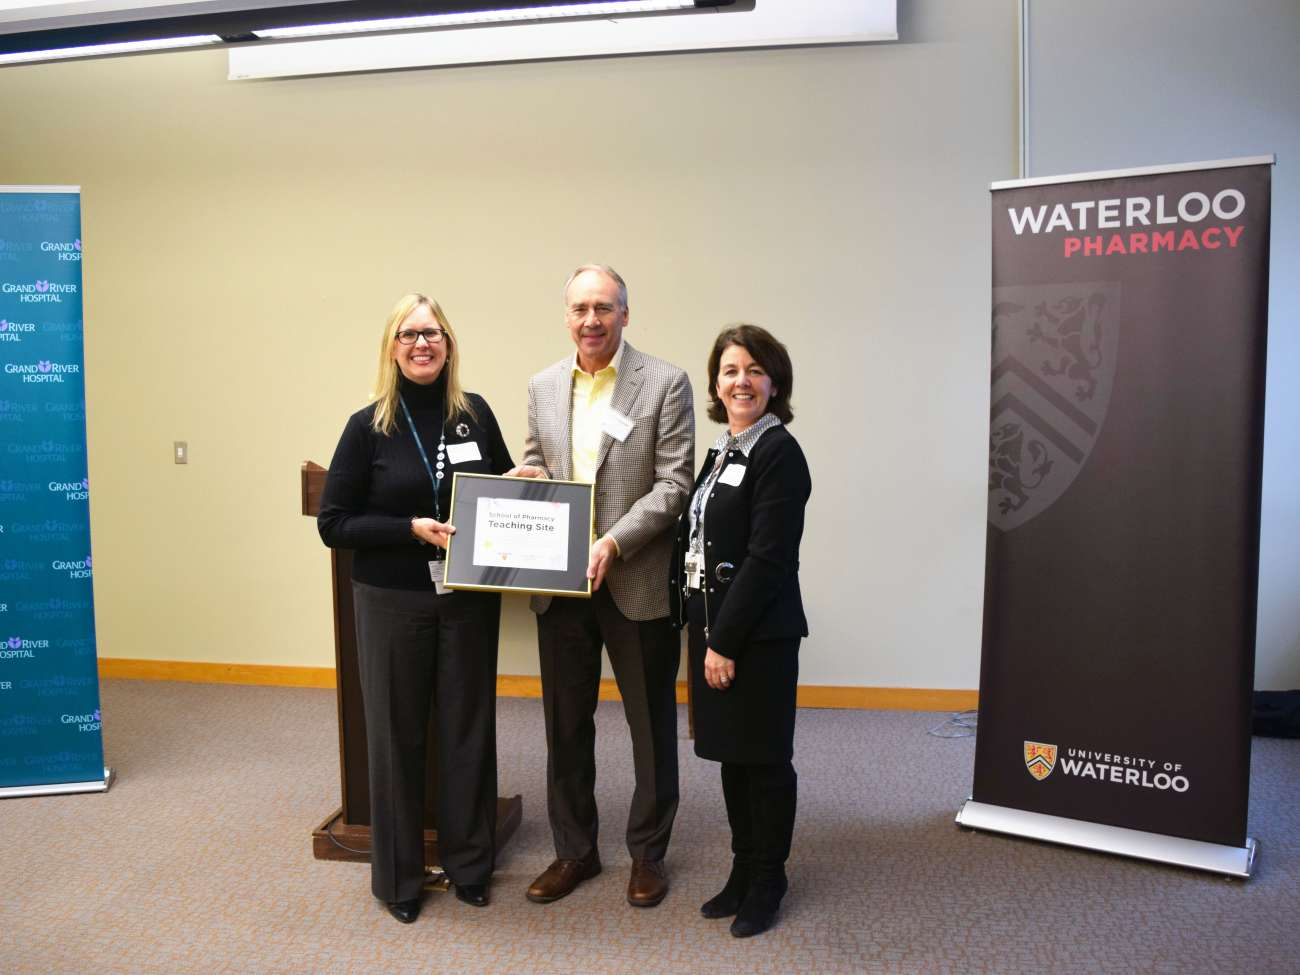 GRH's Jane Martin and Judy Linton (left, right) accept a plaque from Dr. David Edwards (University of Waterloo, middle).